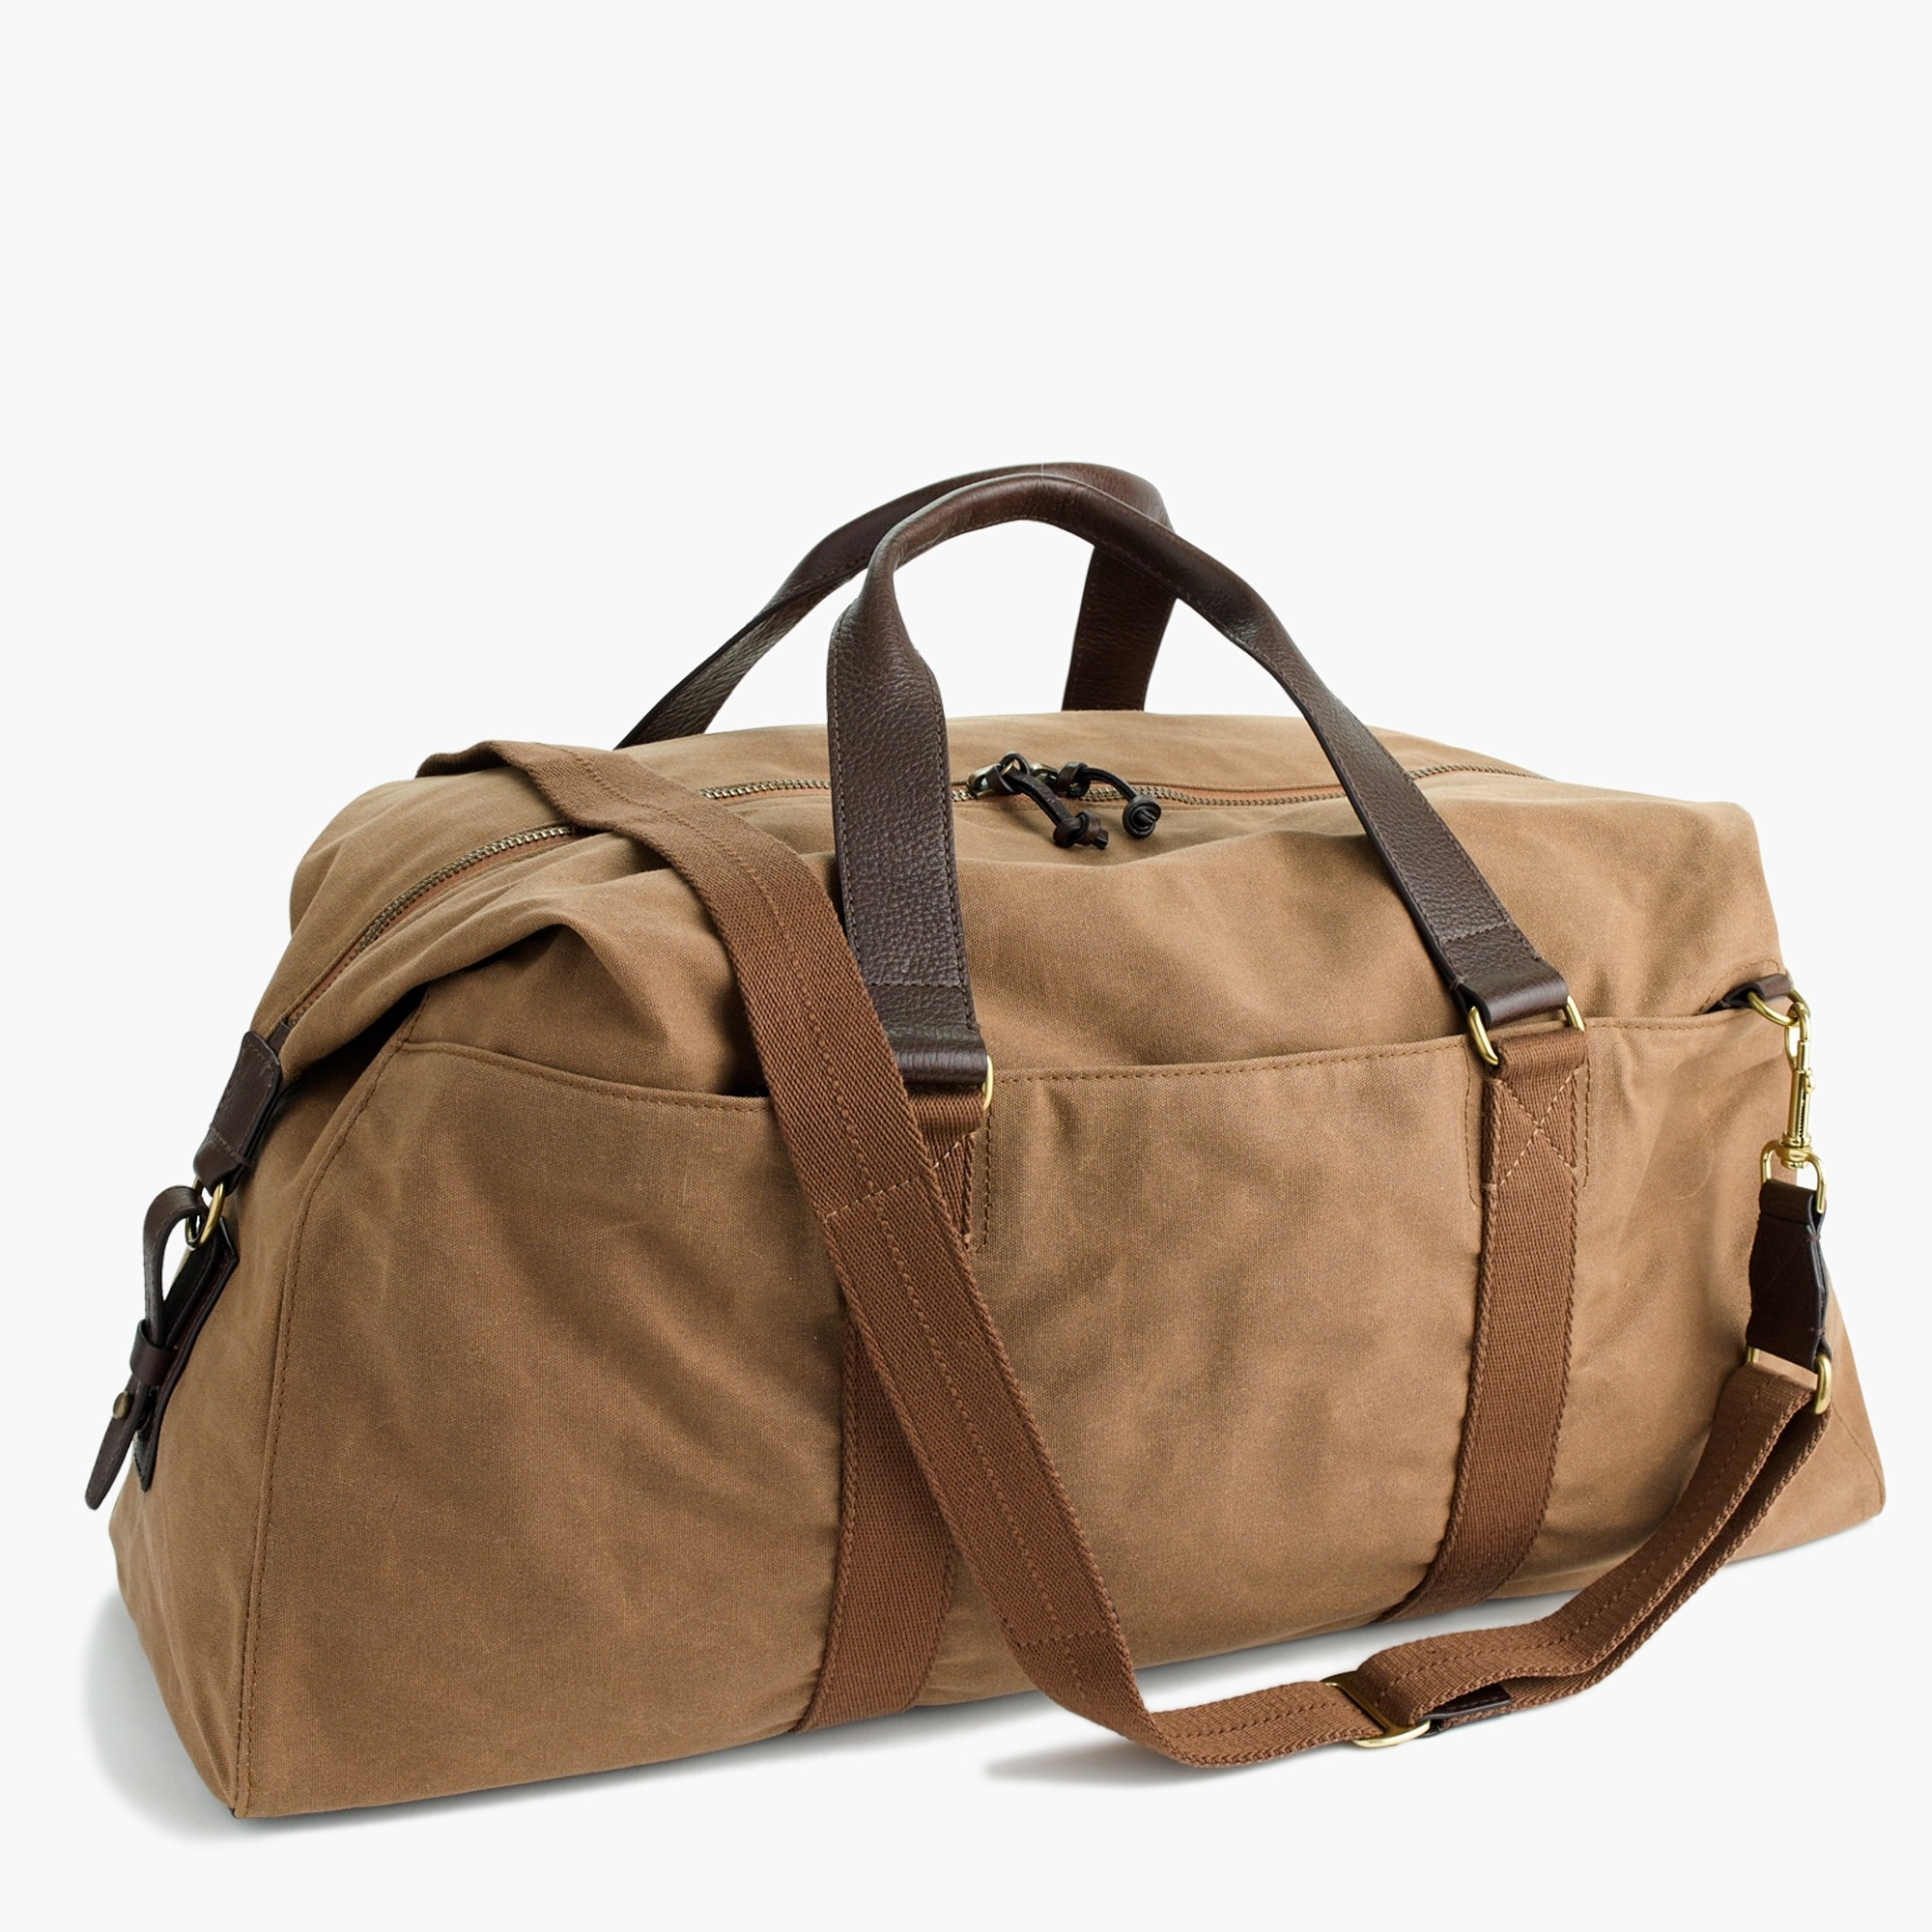 mens Abingdon weekender bag